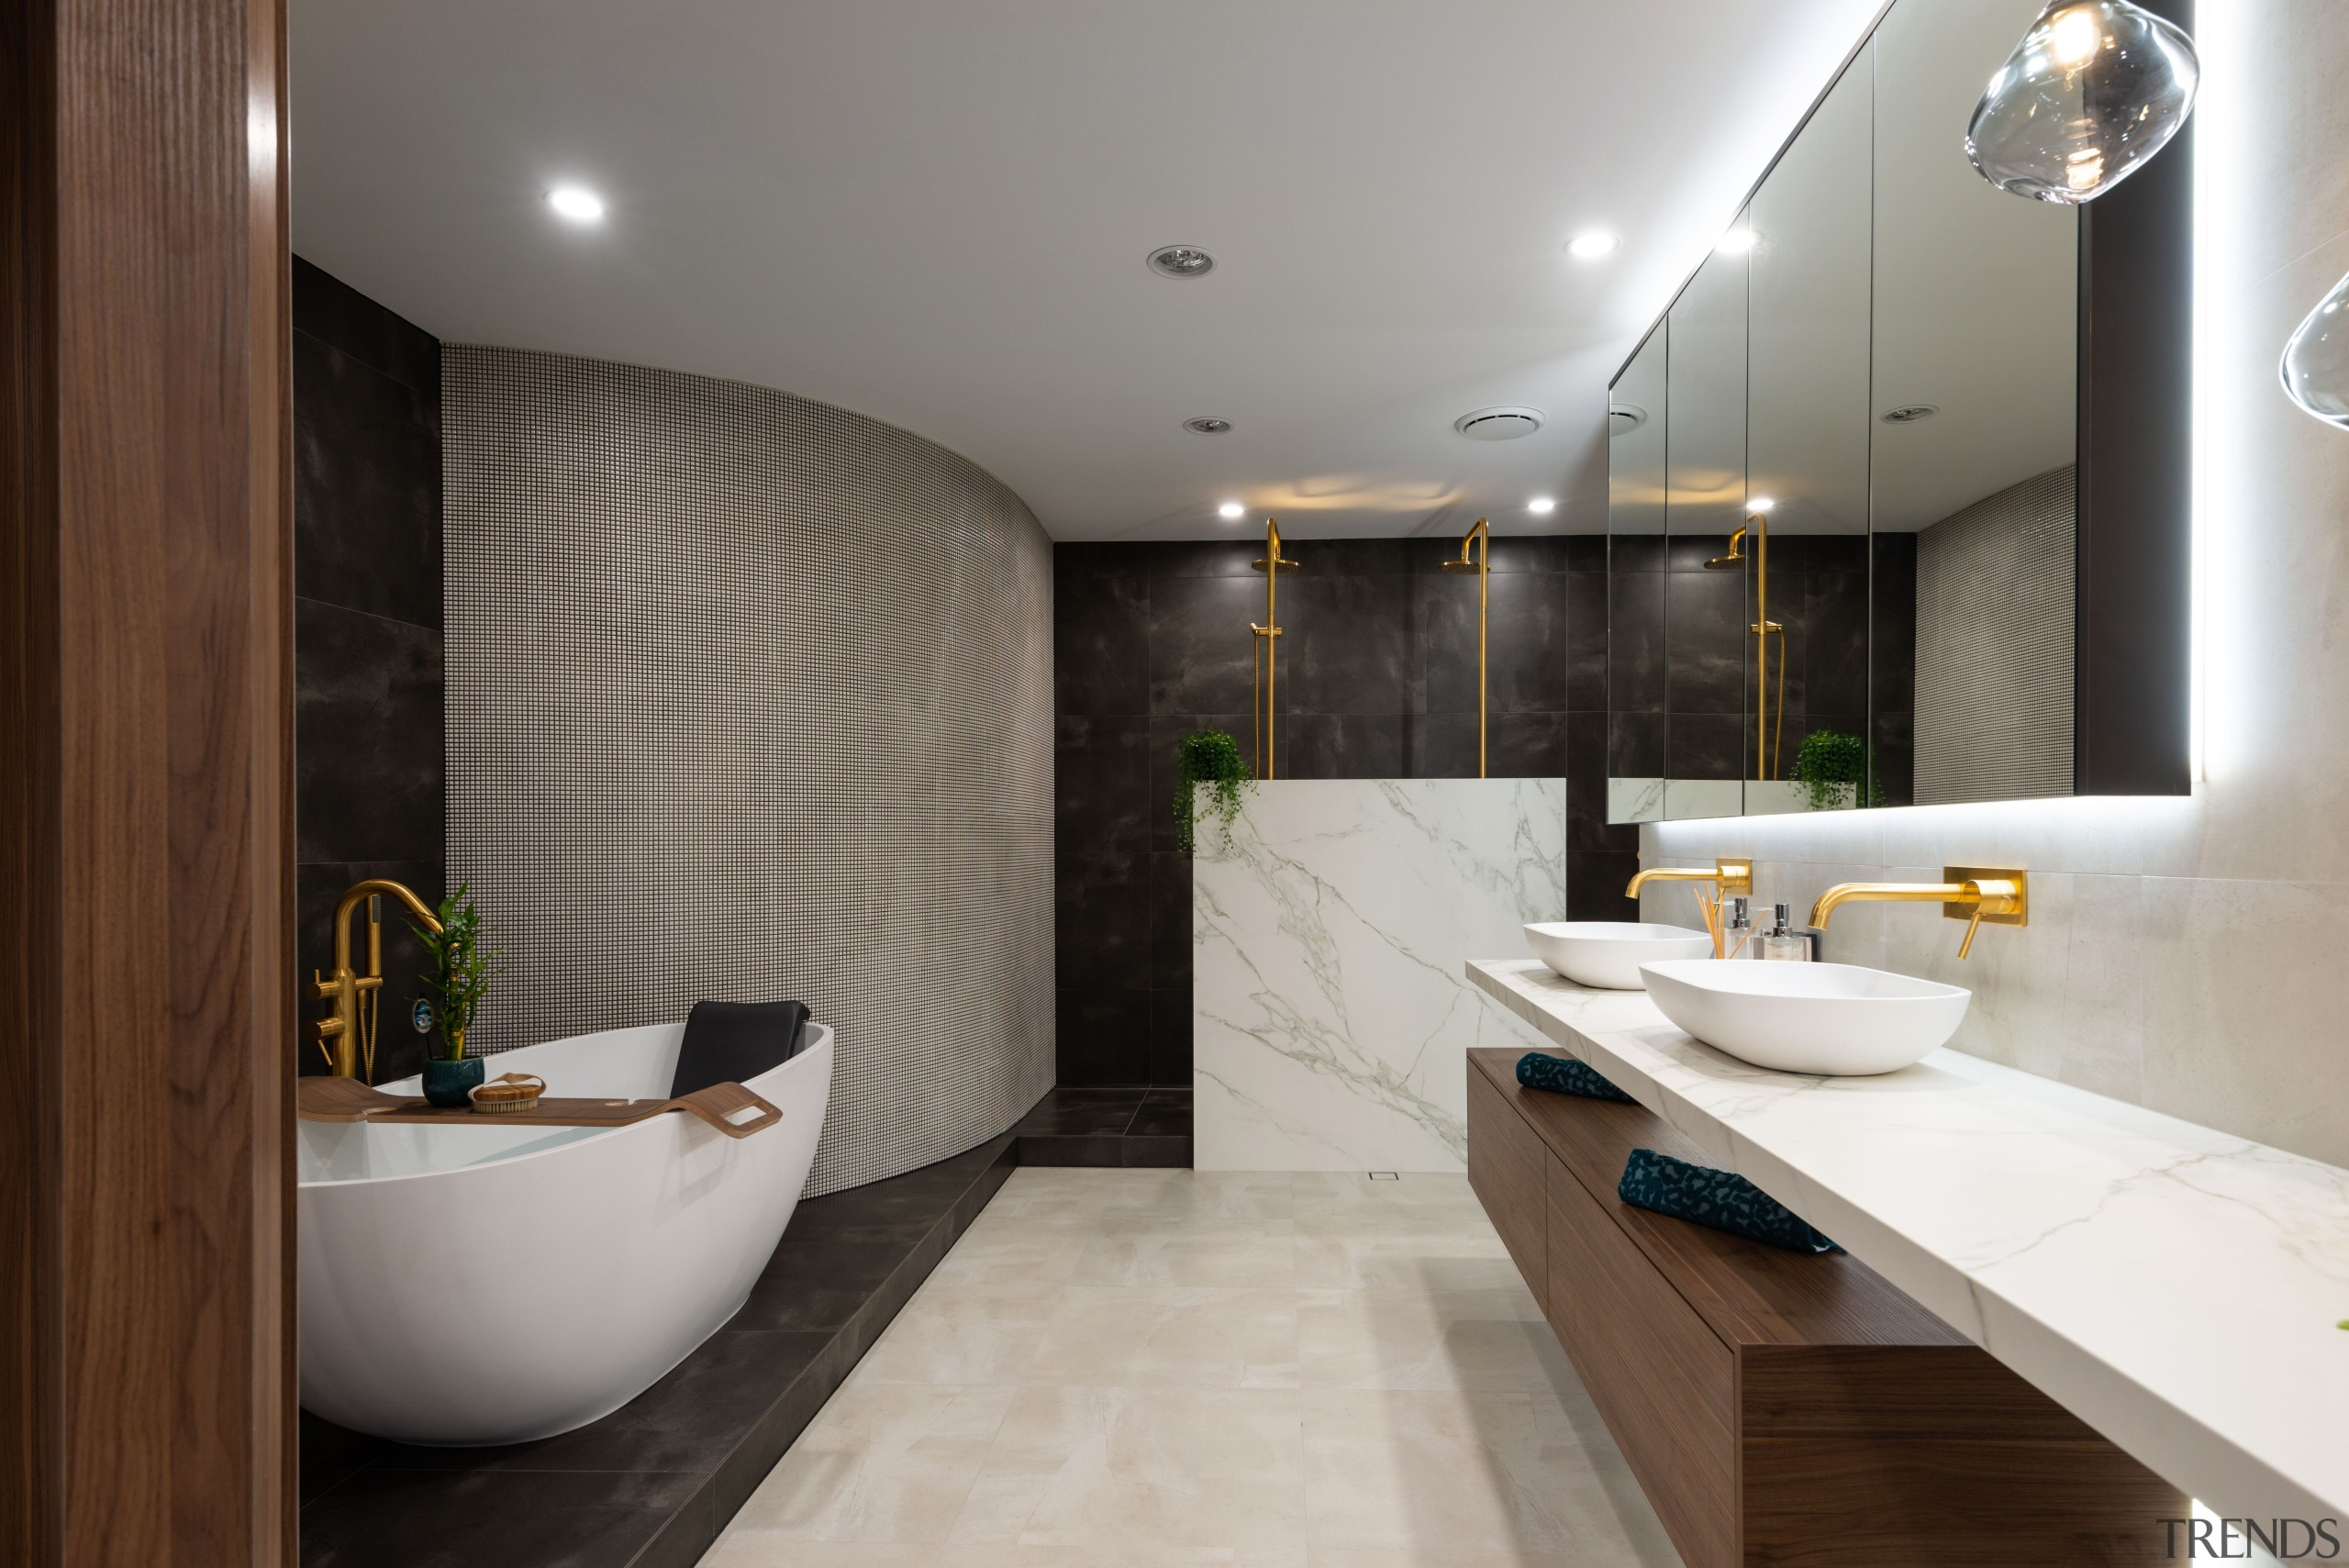 While designed along contemporary, pared back and sculptural architecture, bathroom, building, ceiling, countertop, floor, flooring, furniture, home, house, interior design, material property, plumbing fixture, property, real estate, room, sink, tap, tile, gray, black